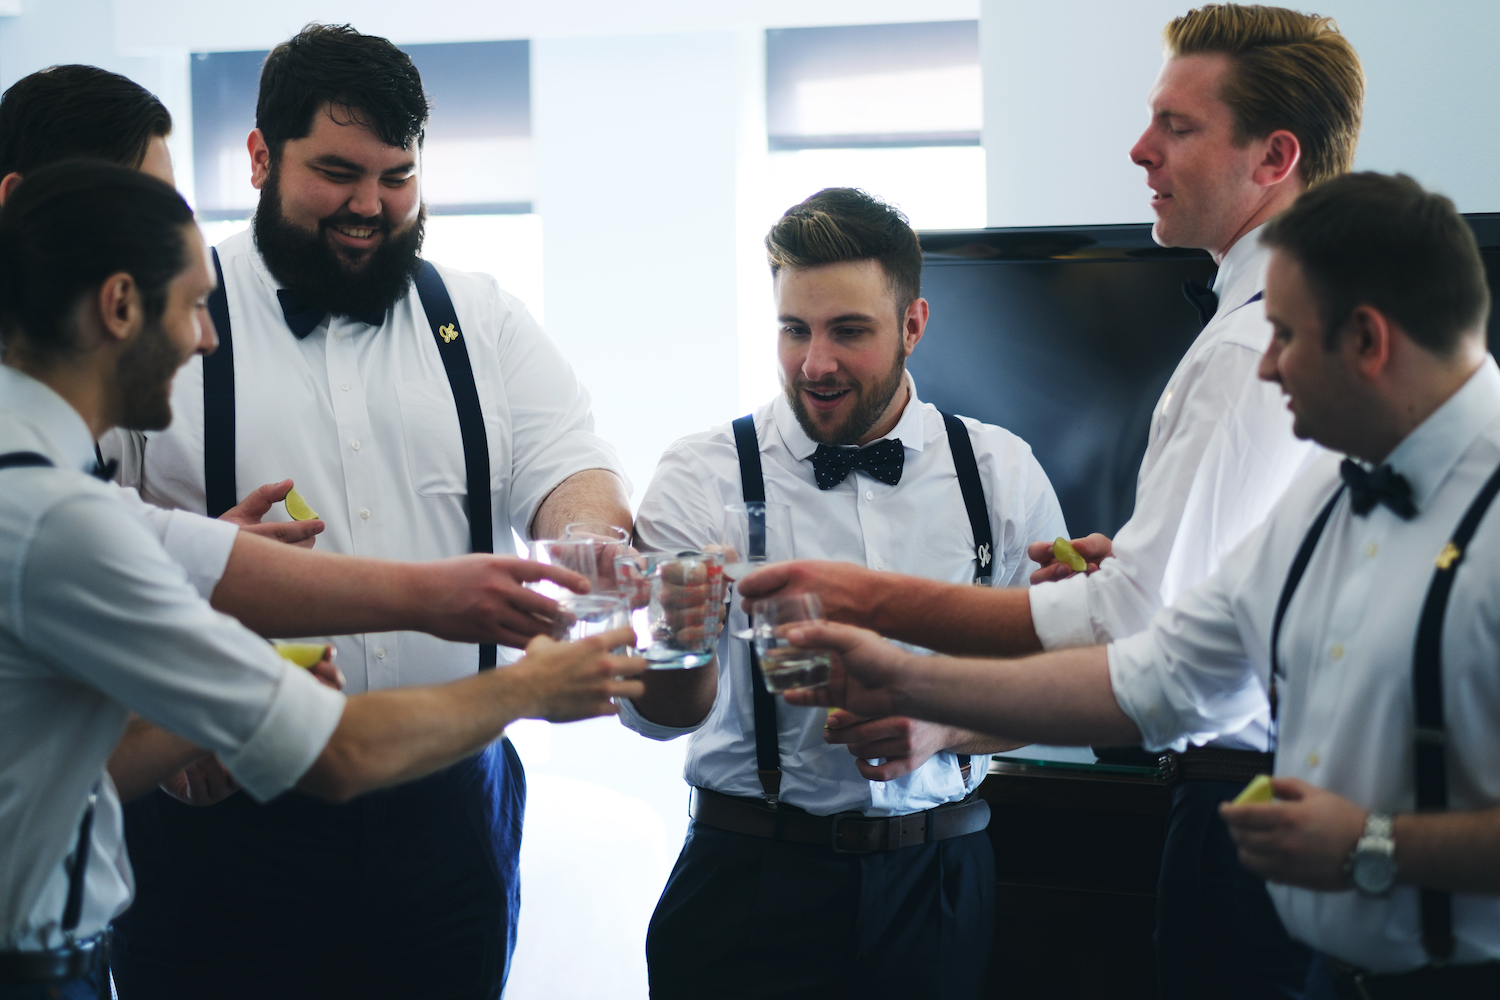 alex-&-groomsmen-toasting-glasses-groom-prep-wedding-photography-nj